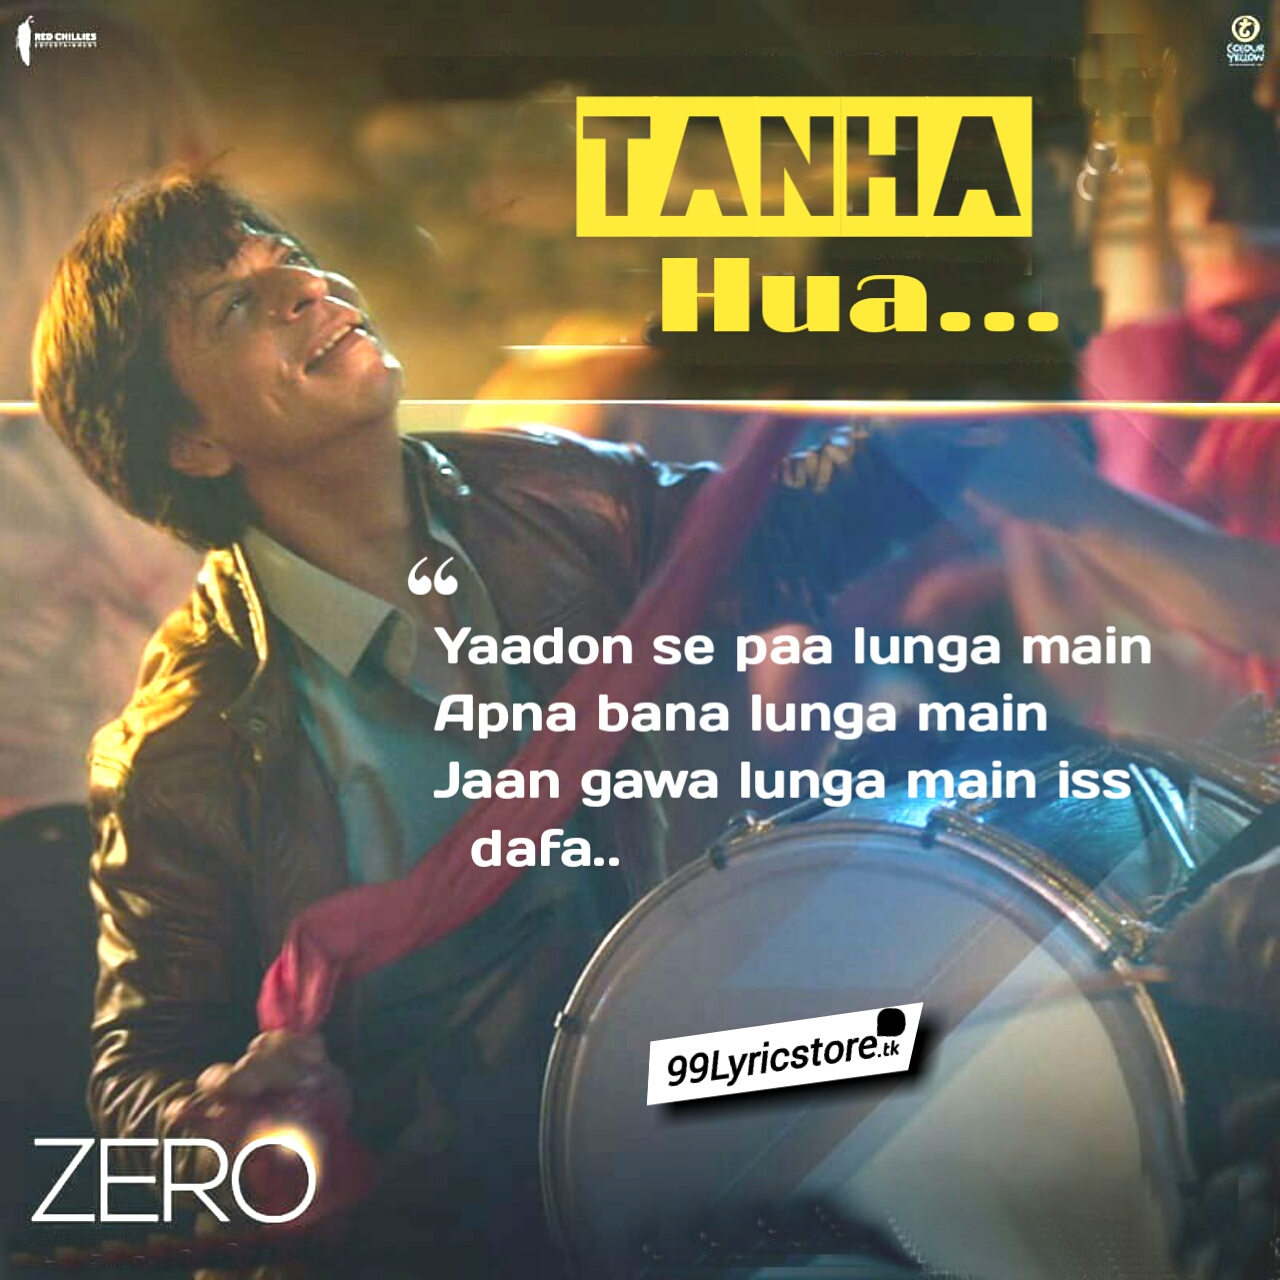 Tanha Hua Lyrics – Zero | Rahat Fateh Ali Khan | Shahrukh Khan, Zero movie Song Lyrics 2018, Zero movie Song Lyrics, Tanha Hua Zero Lyrics, Tanha Hua Song Lyrics Zero, Tanha Hua Zero movie Song Lyrics, Shahrukh Khan Zero movie Song Lyrics, Latest Song Lyrics, Latest Bollywood Movie Song Lyrics, Zero Movie Song images, Tanha Hua Images